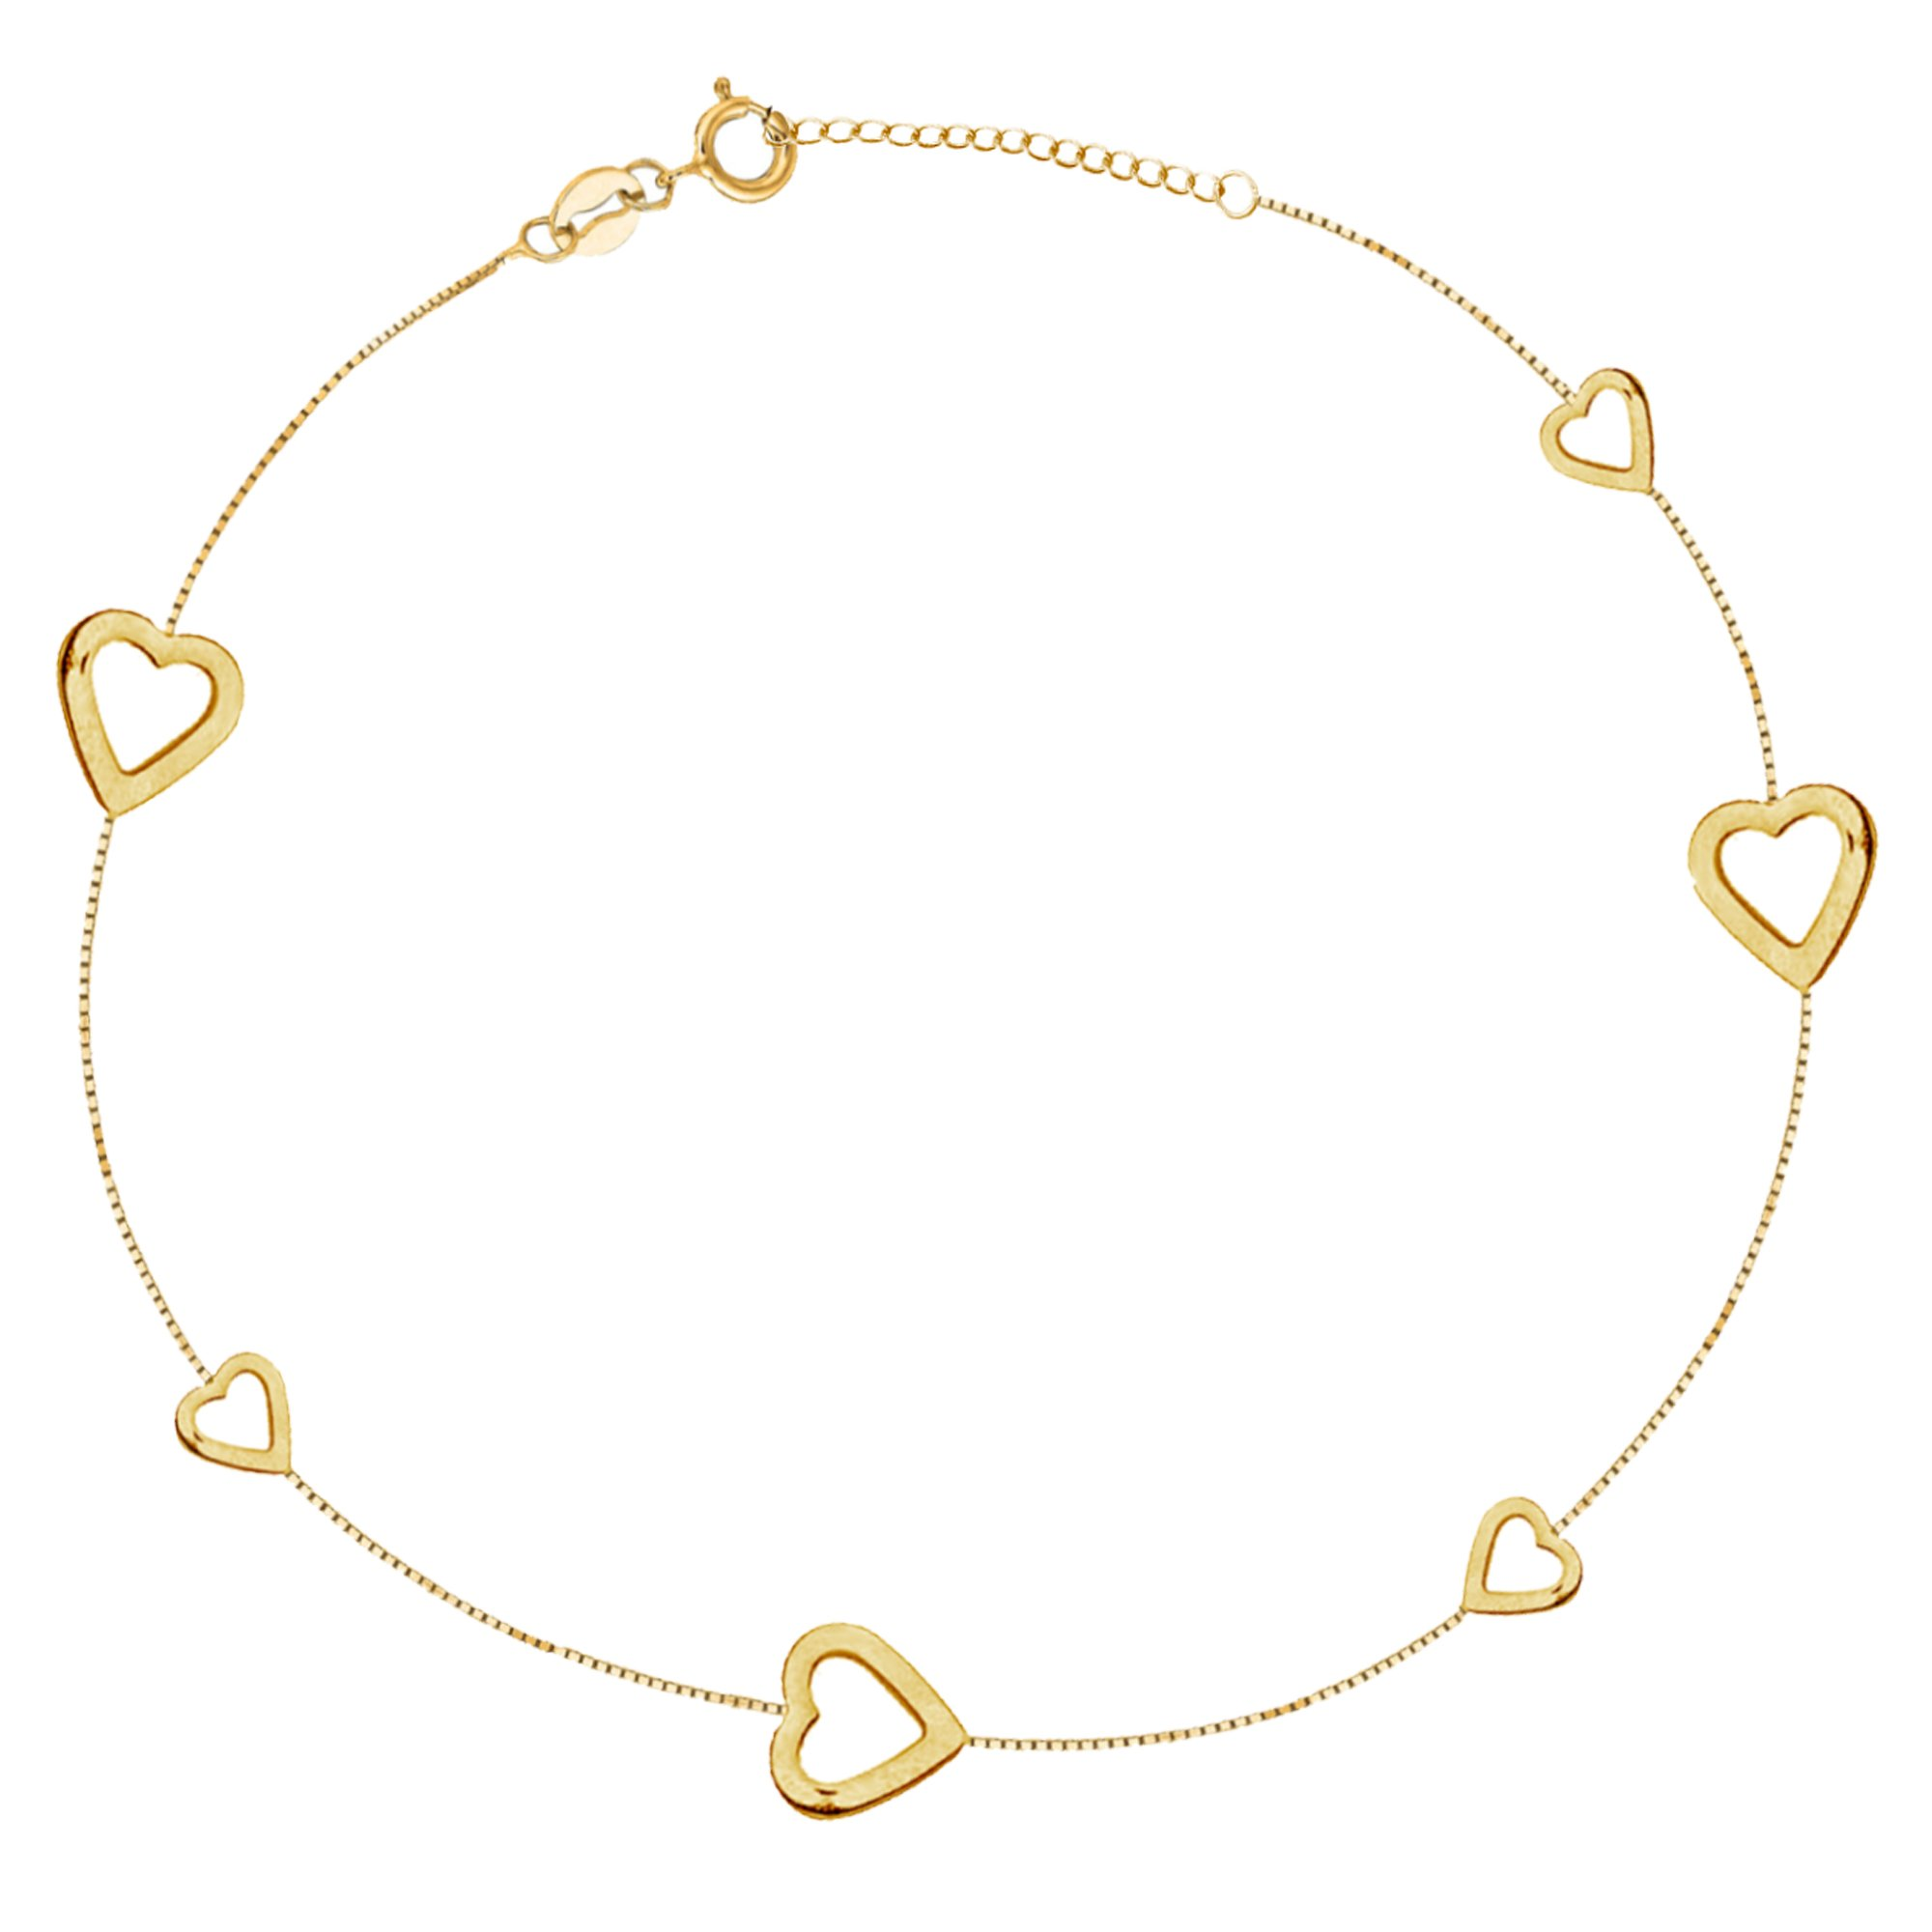 Ritastephens 14k Gold Mini Sideways Open Hearts Adjustable Box Chain Anklet Ankle Bracelet 9-10 Inches